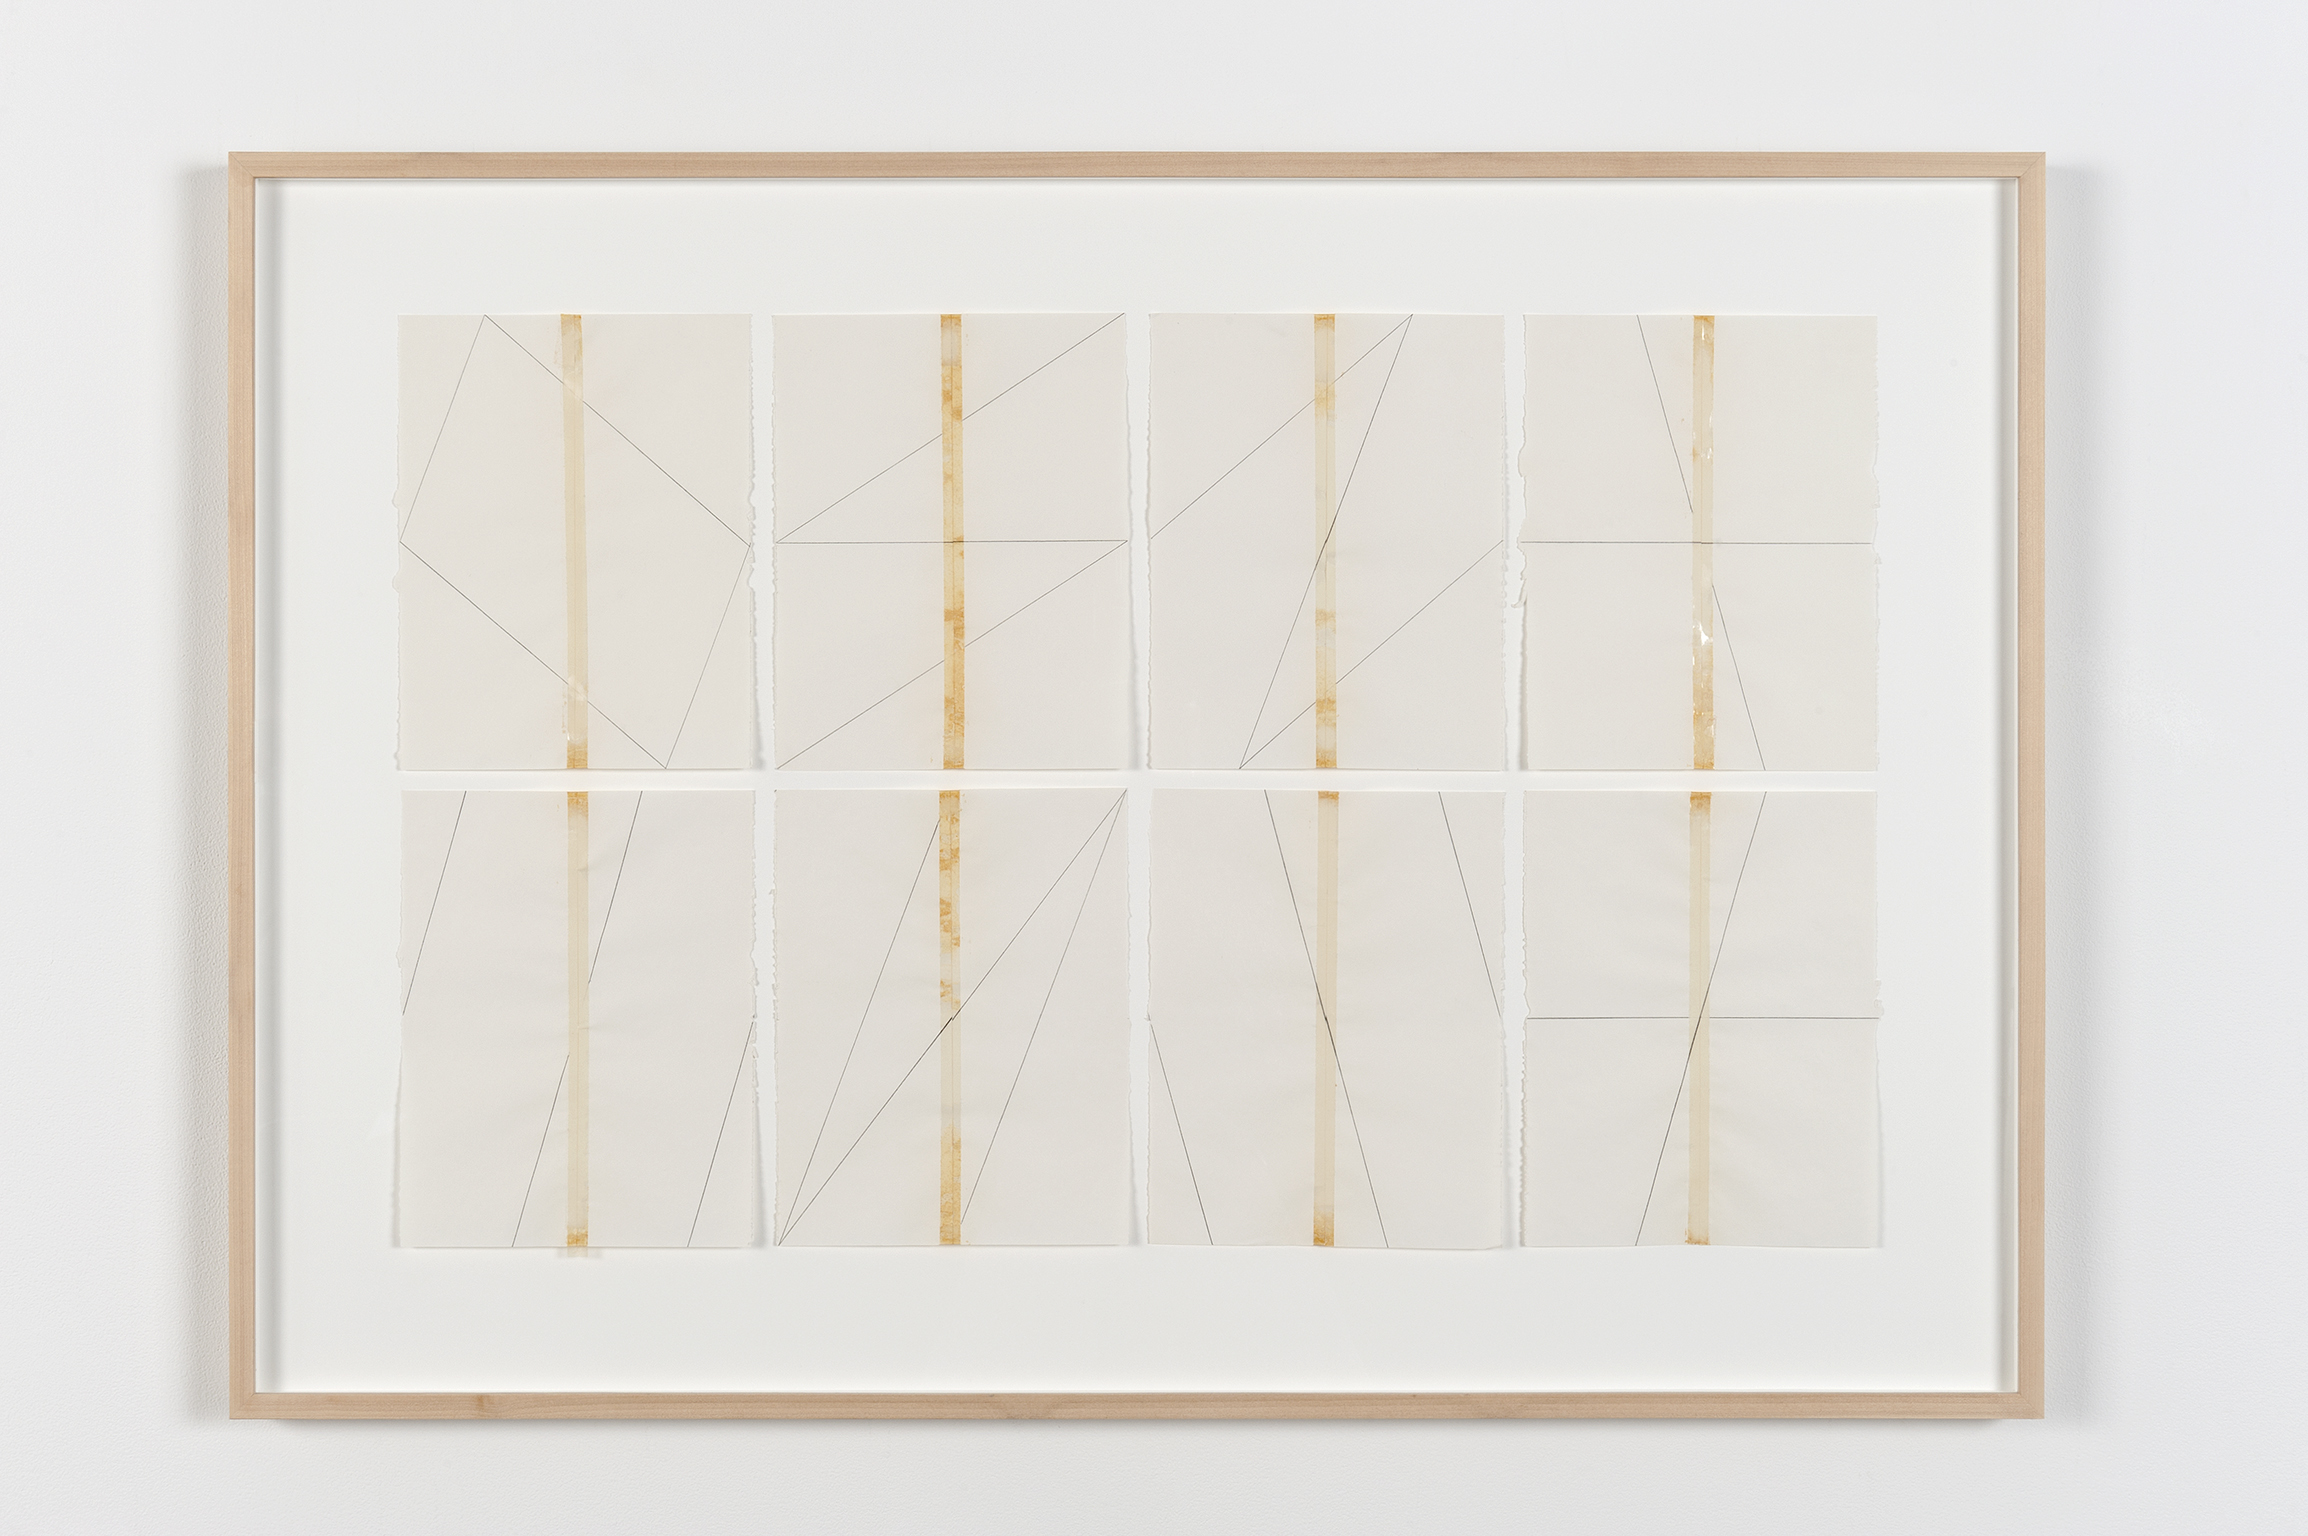 Robert Kleyn, Taped Drawings, 1970, transparent tape and pencil on paper, 30 x 43 in. (76 x 109 cm) by